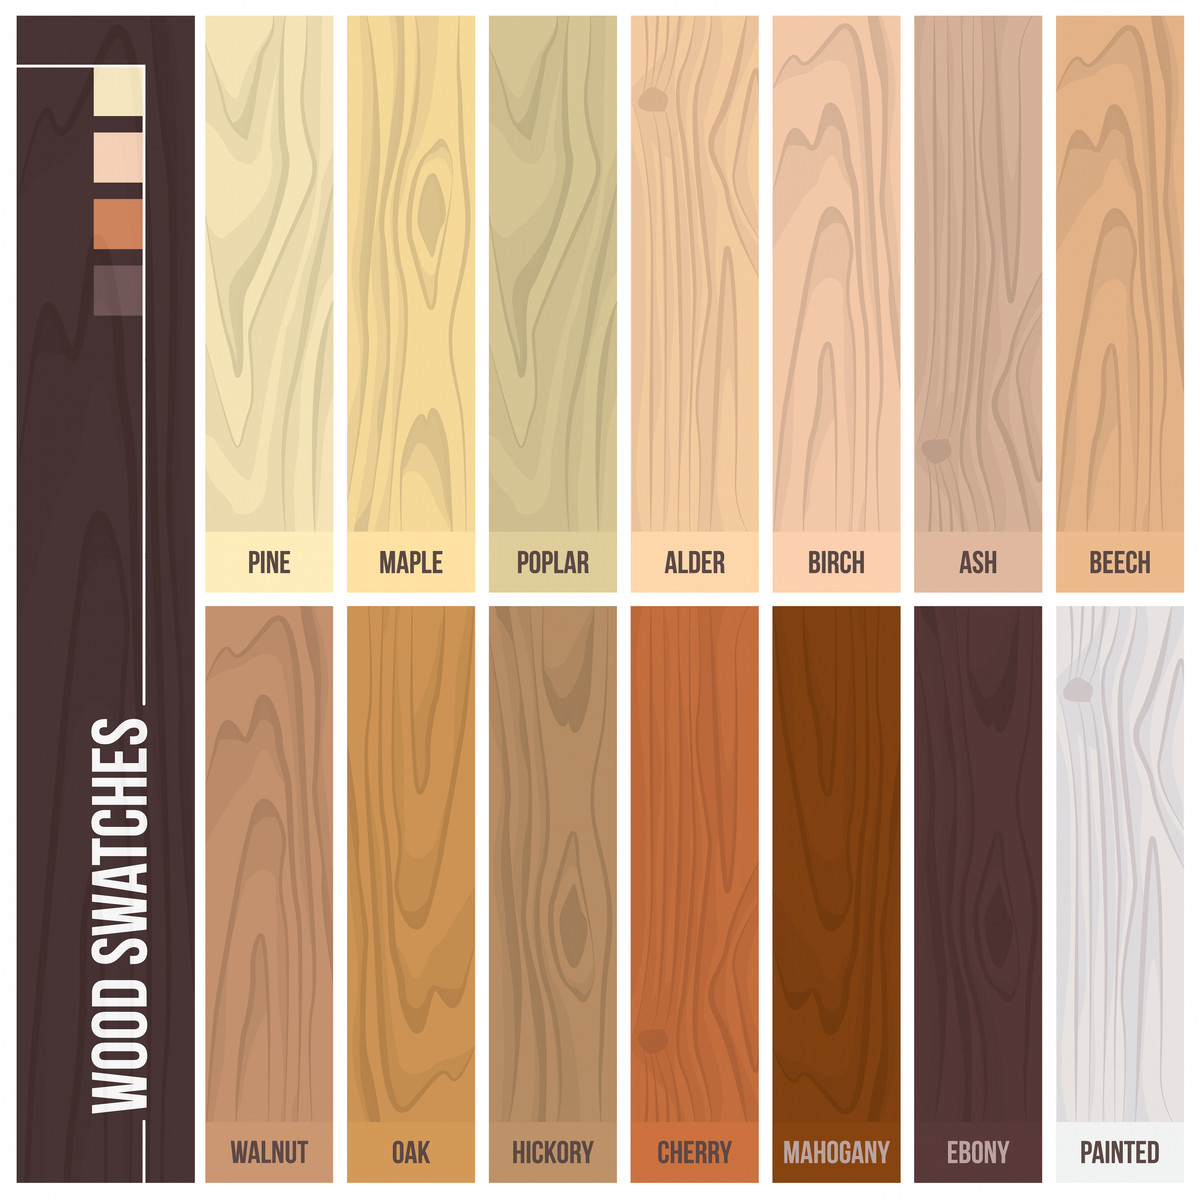 how to sand and refinish hardwood floors yourself of 12 types of hardwood flooring species styles edging dimensions intended for types of hardwood flooring illustrated guide